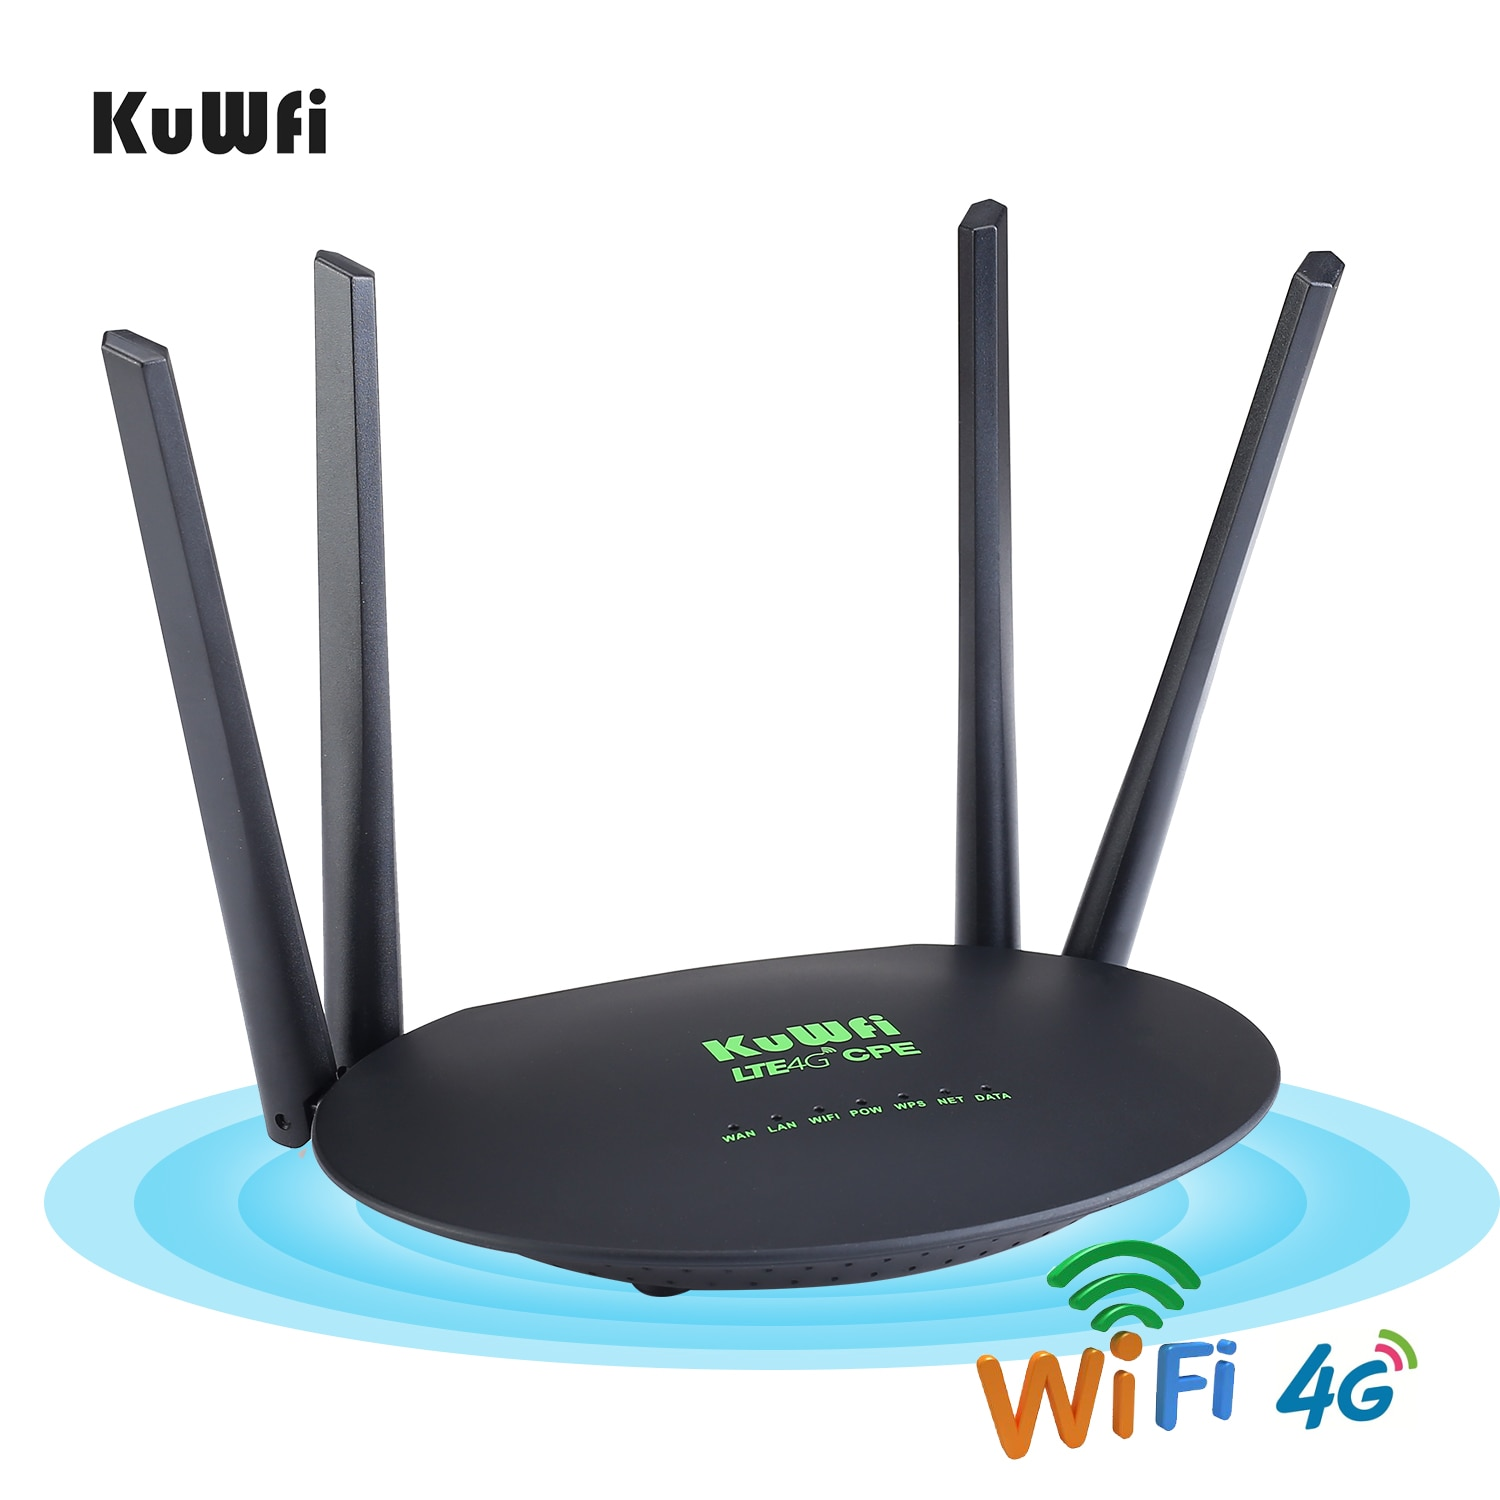 KuWfi Wireless CPE 4G LTE Wifi Router 300Mbps 3G/4G With Sim Card Slot Wan/Lan Port 4pcs External Antennas